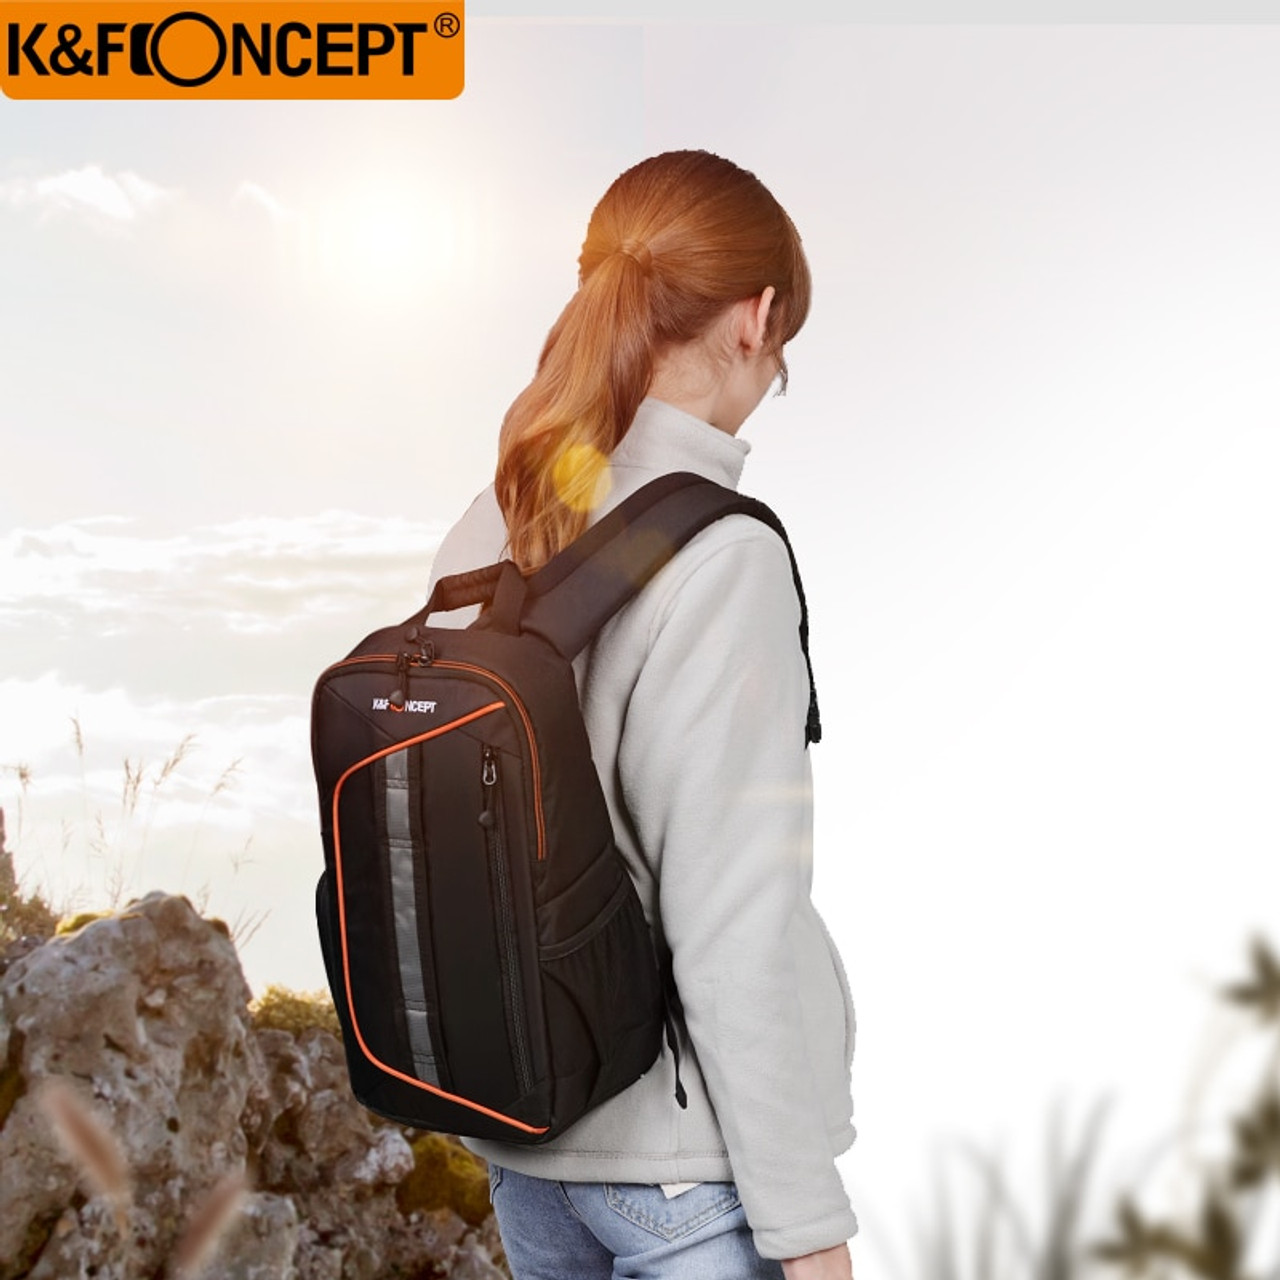 3506f9aa7f K amp F CONCEPT Waterproof Camera Backpack New Style Sling Messenger Travel  Bag Big Capacity Hold ...